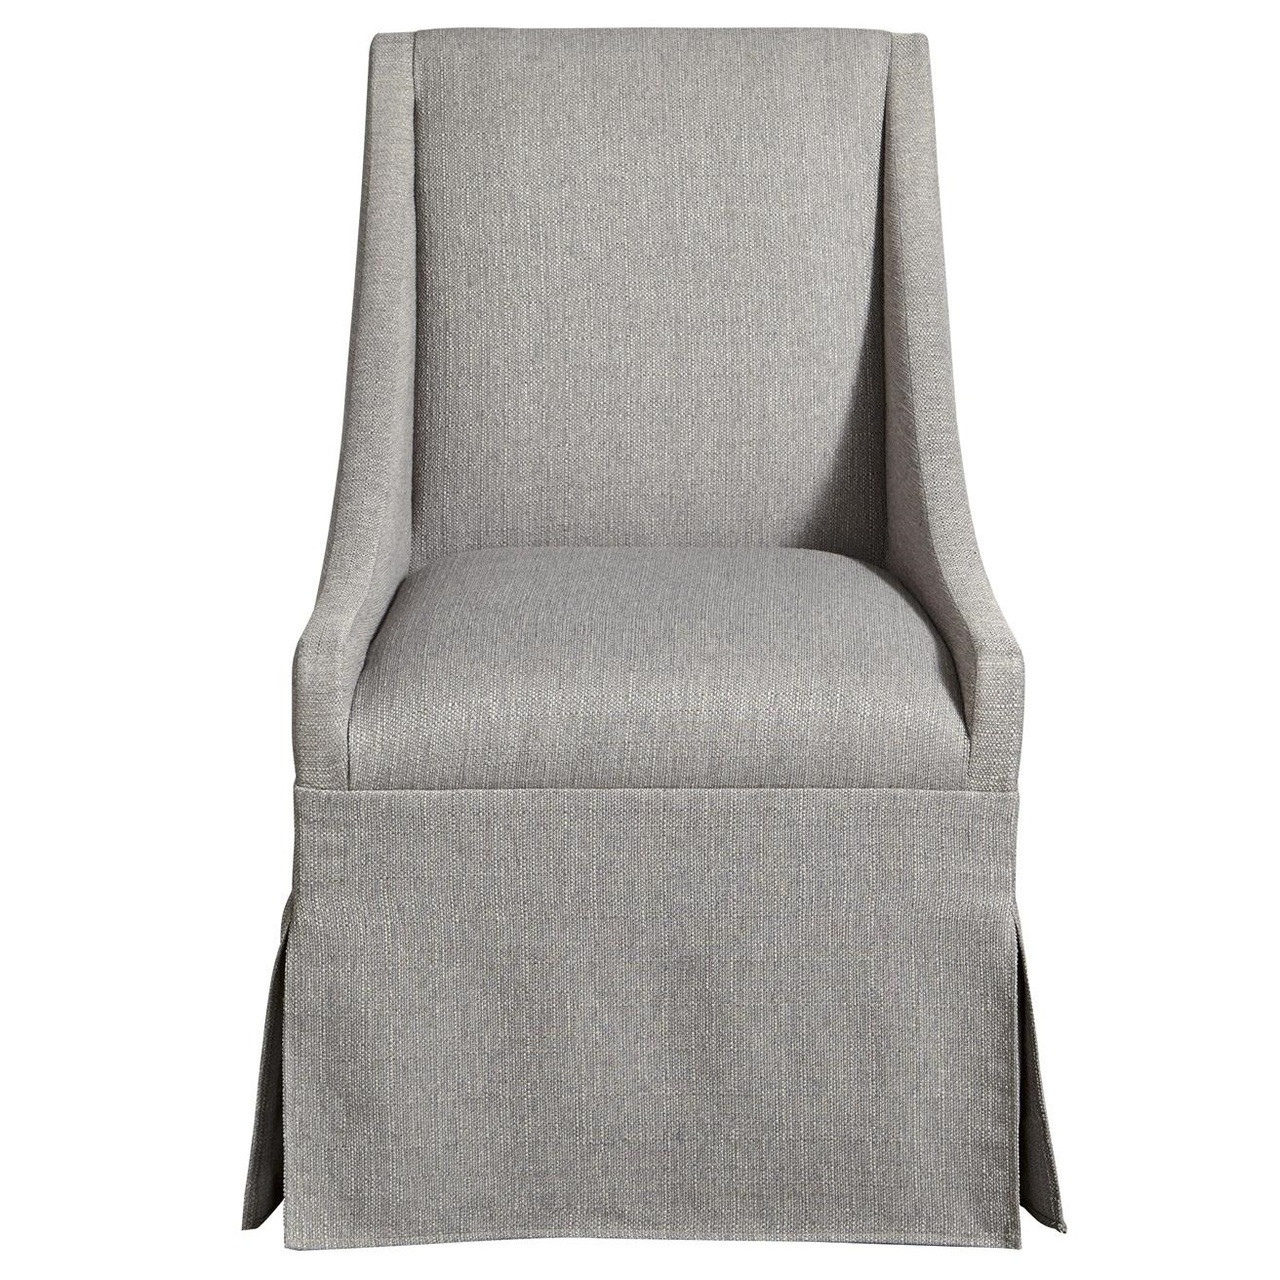 Grey Upholstered Chair Townsend Modern Grey Upholstered Skirted Dining Chair